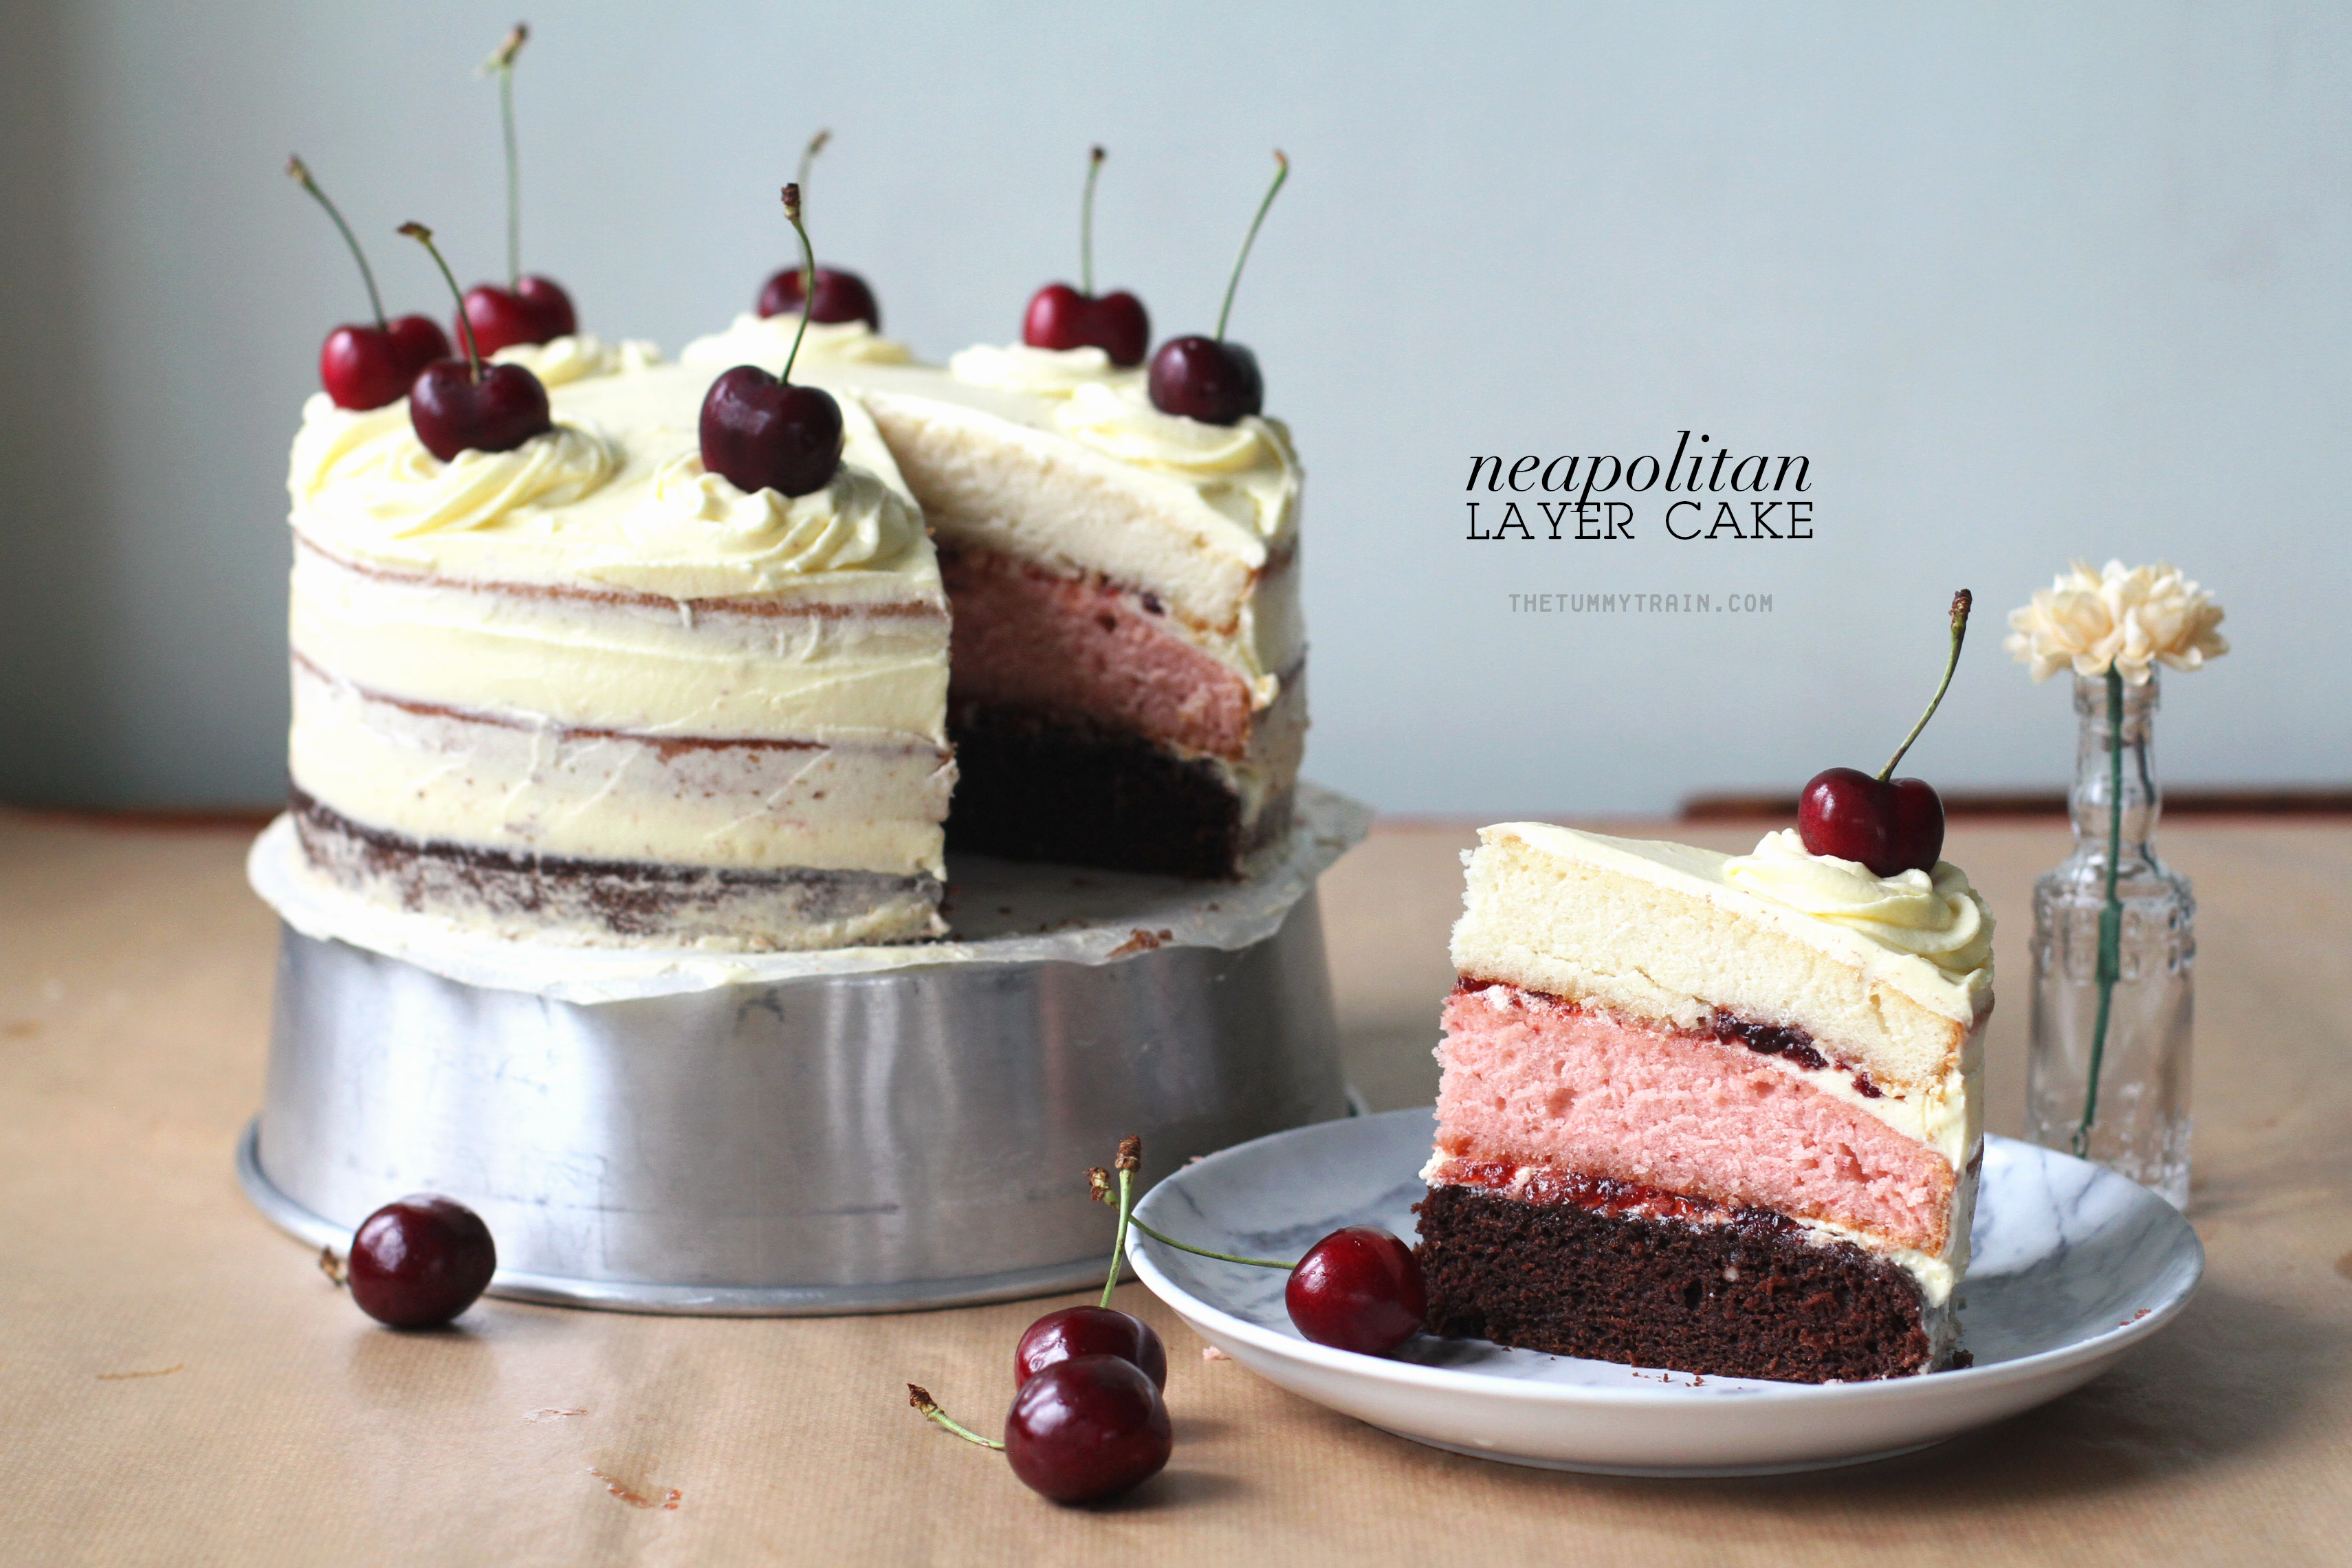 Neapolitan Cake 1 - A Neapolitan Layer Cake made with love using KitchenAid [VIDEO]